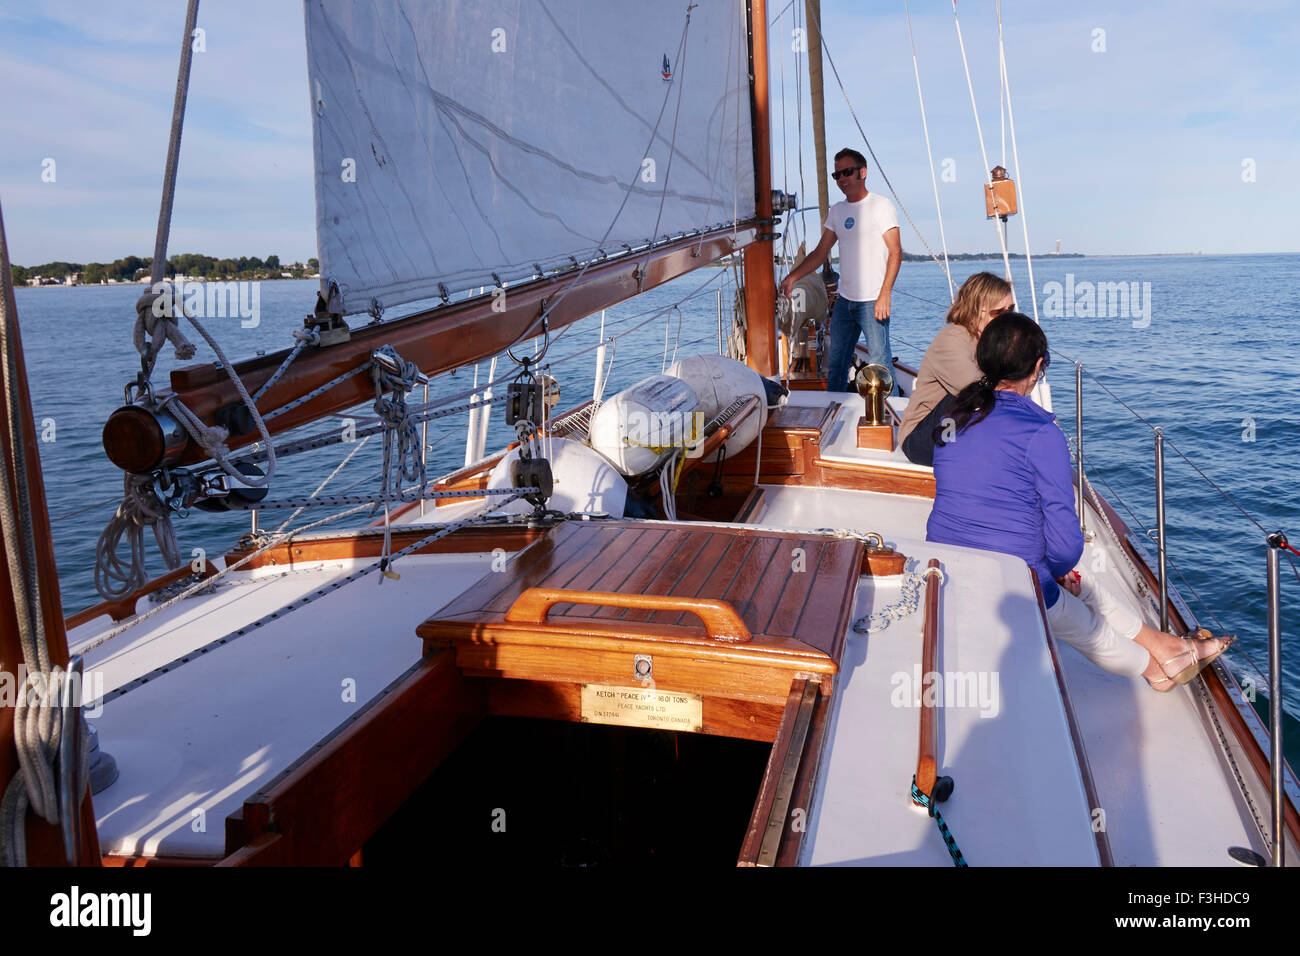 A Formosa Sailing Ketch Made In Taiwan Sailing On Lake Ontario Out Of Port Dover Canada - Stock Image